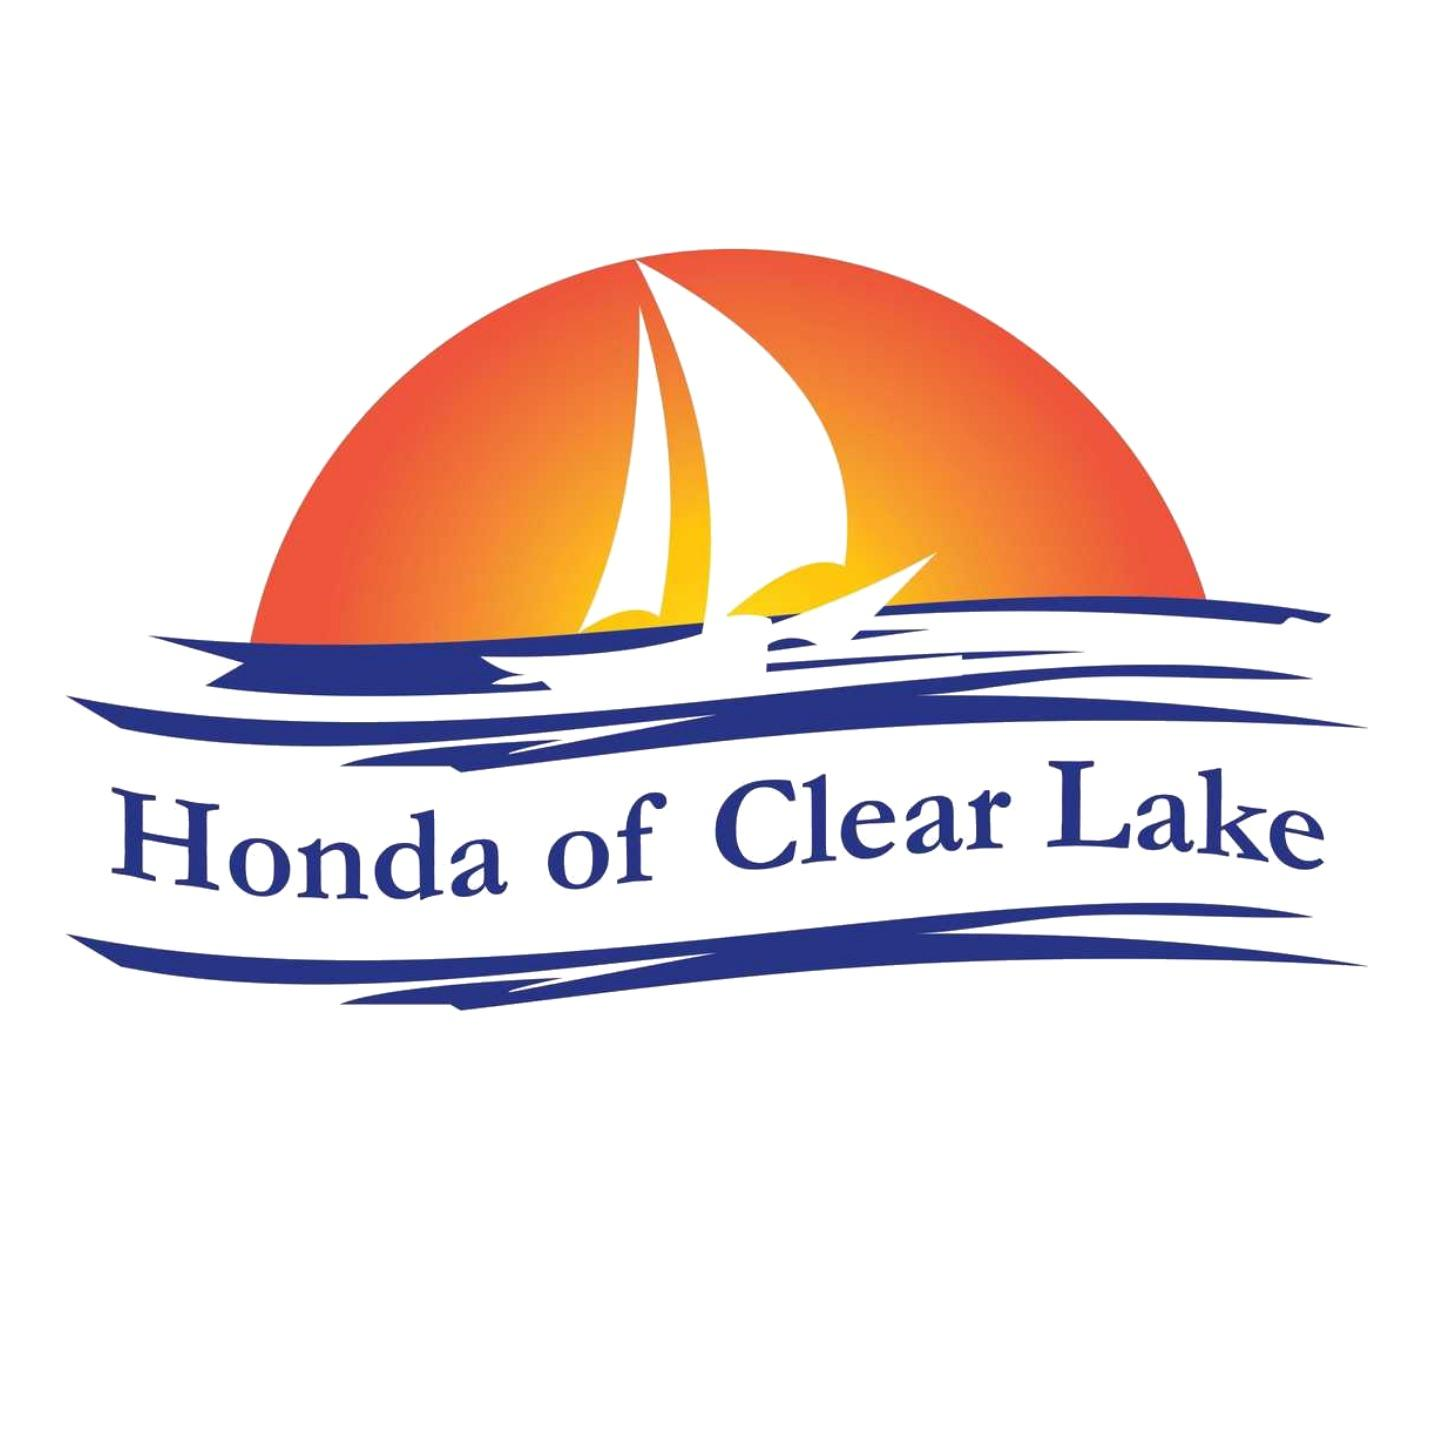 Honda of Clear Lake